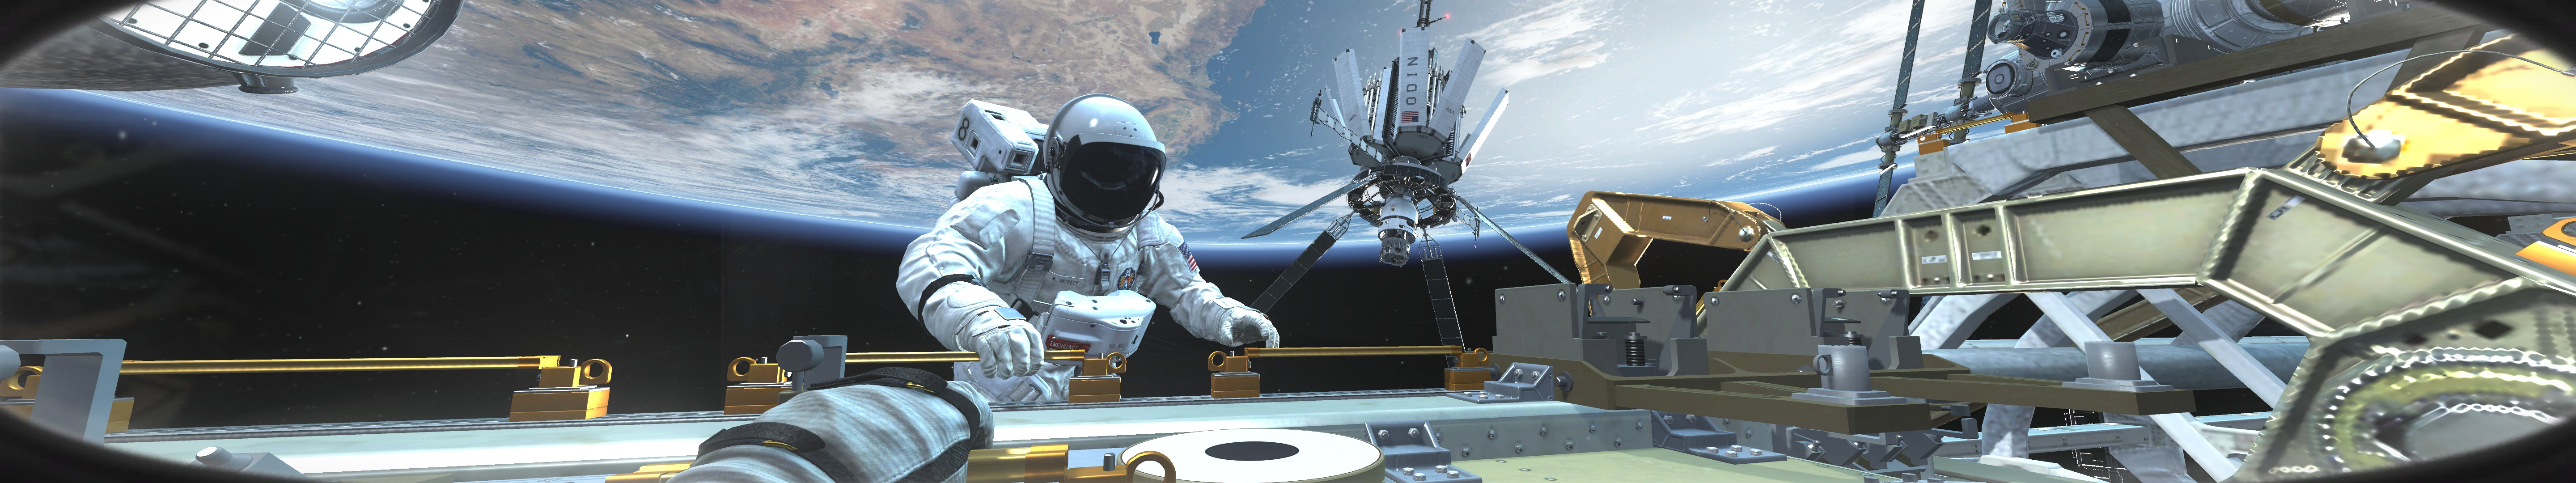 General 5760x1080 Call of Duty: Ghosts space science fiction digital art render CGI video games Call of Duty